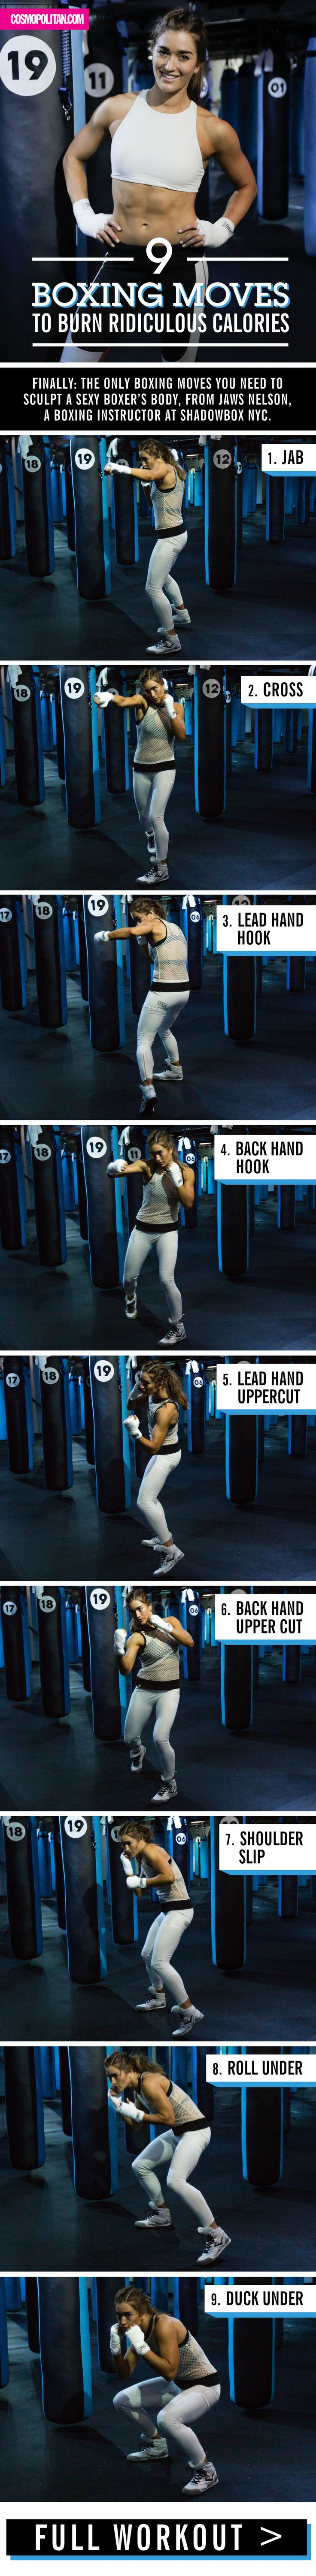 9+Boxing+Moves+to+Burn+Ridiculous+Calories - Cosmopolitan.com